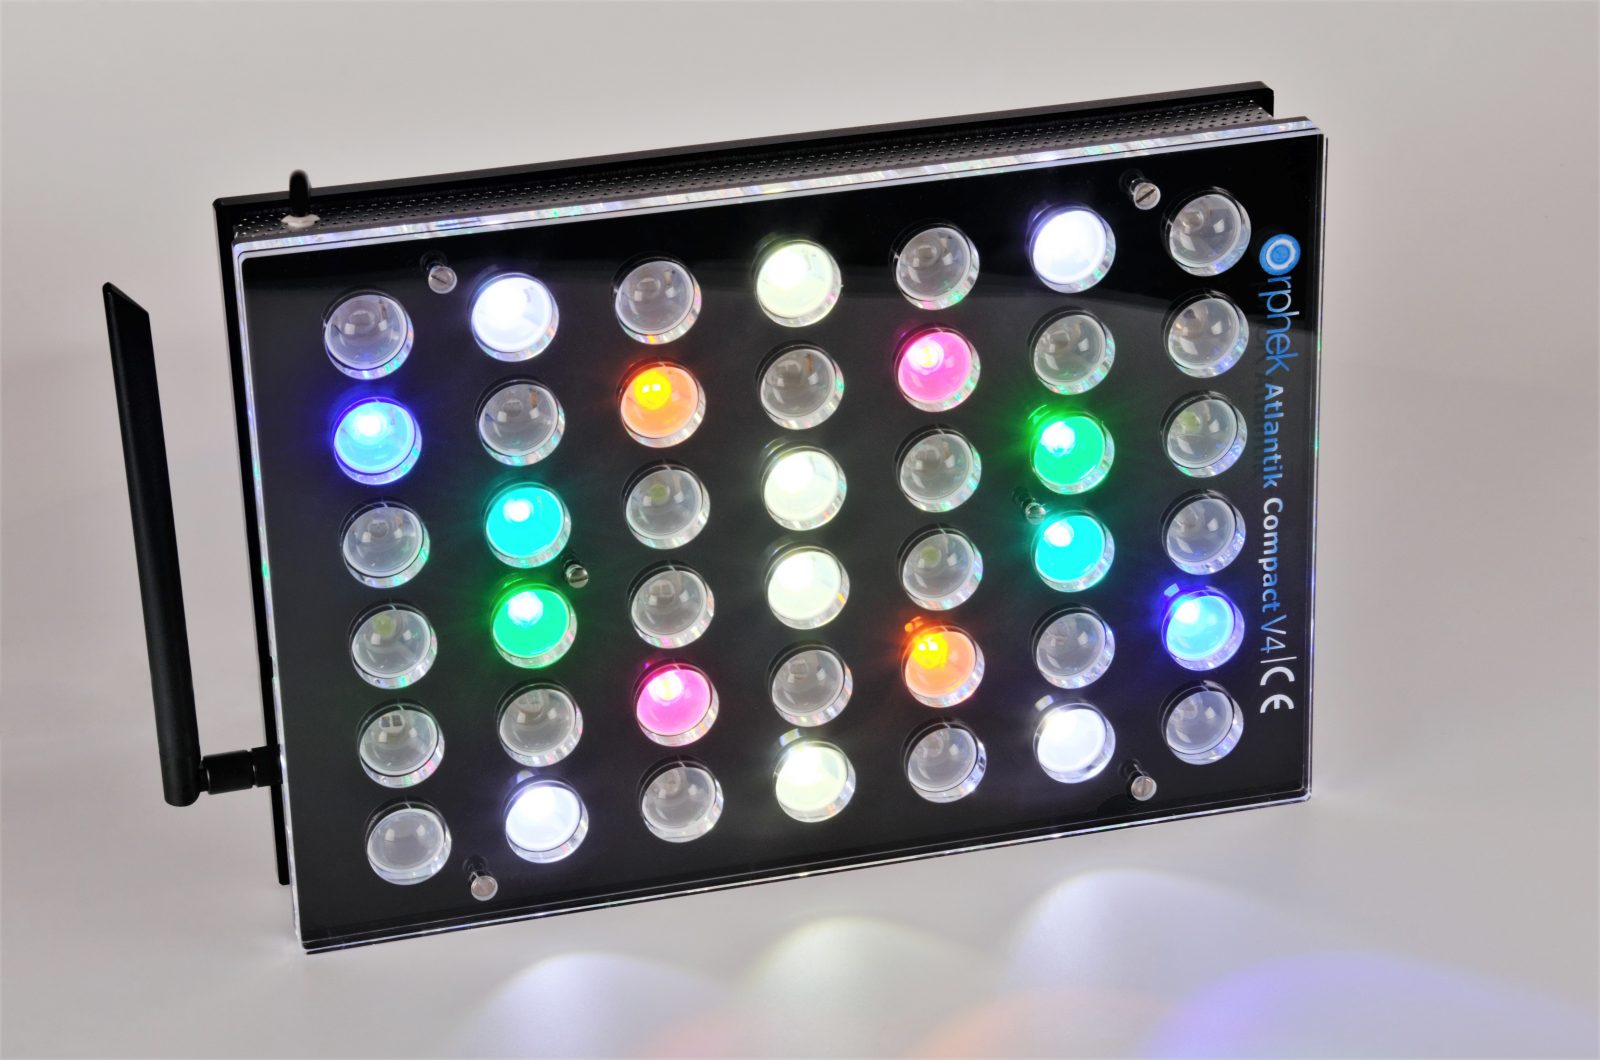 Orphek Aquarium LED Lighting Atlantik Compact V4 light on channel 1+4